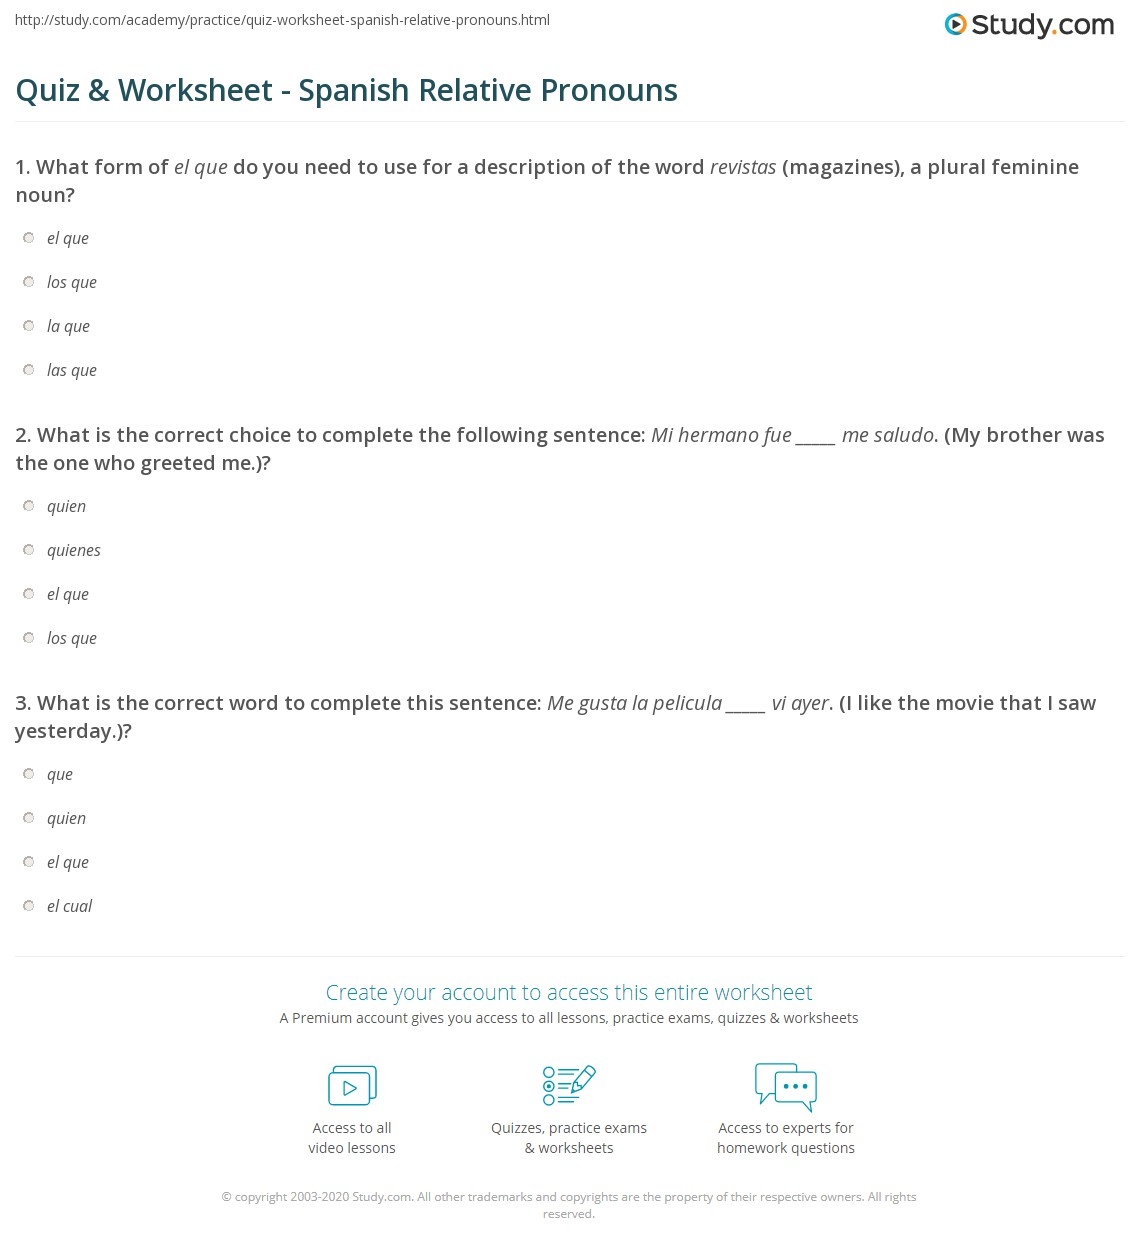 Workbooks avancemos 2 workbook answers online : Quiz & Worksheet - Spanish Relative Pronouns | Study.com